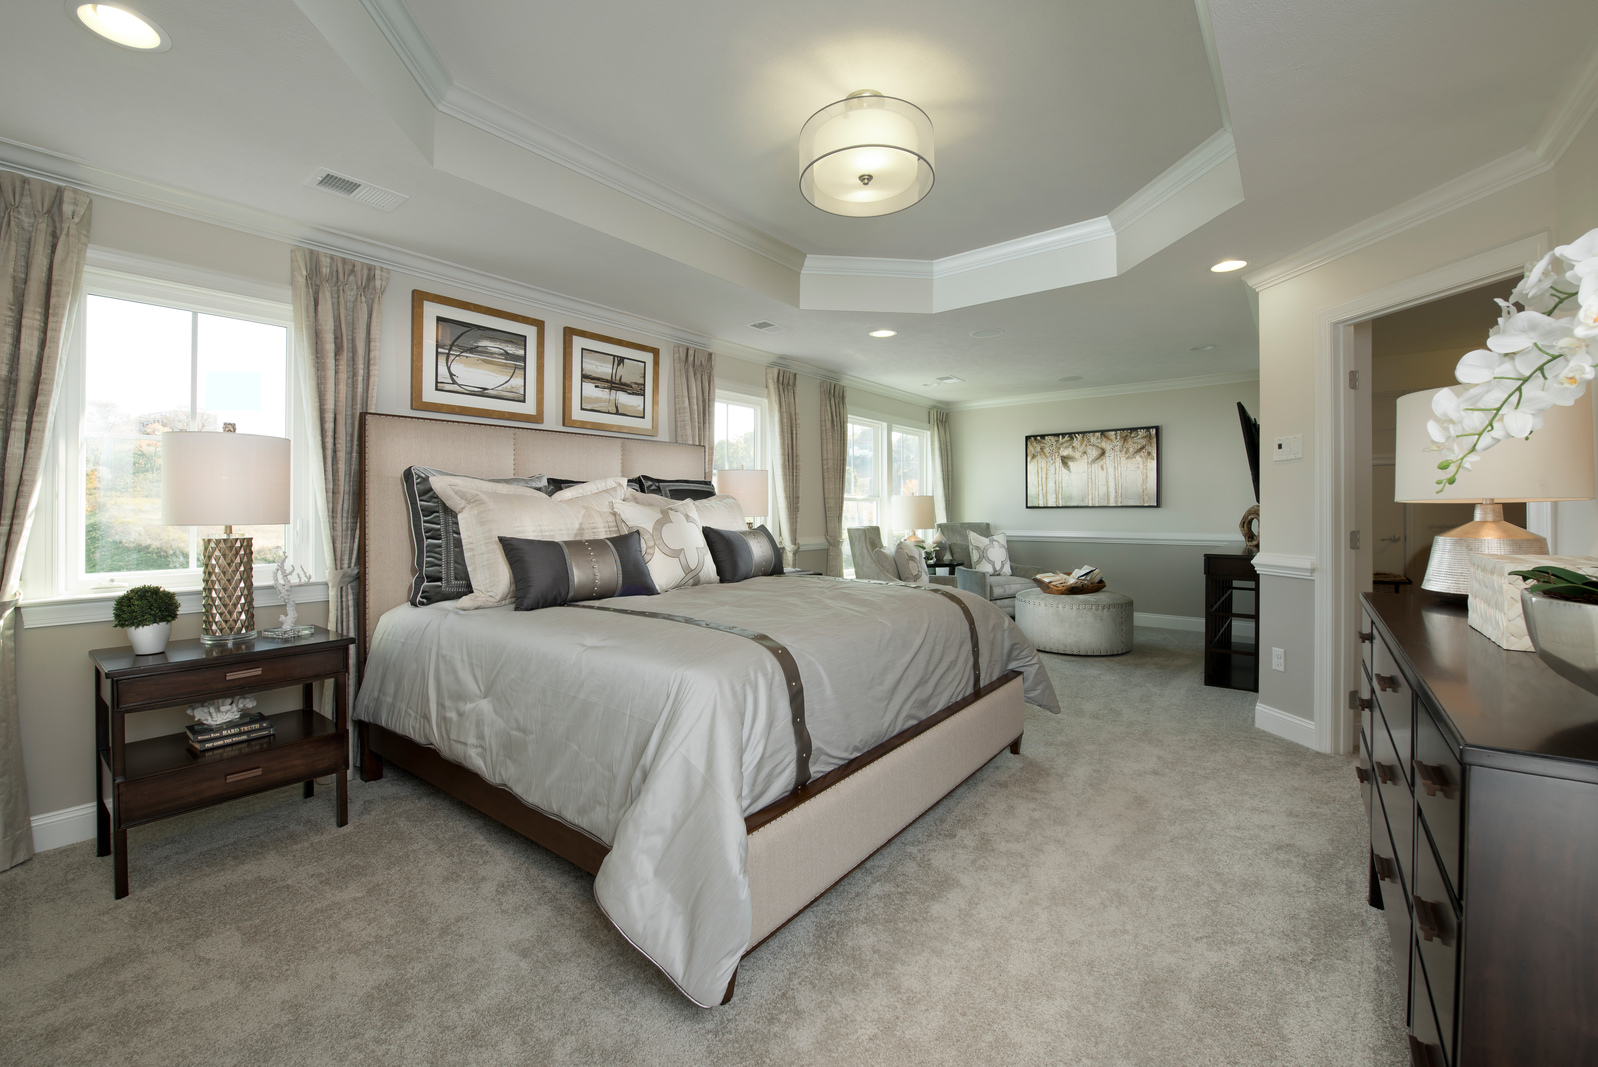 New Homes for sale at Woodland Creek in Blacklick, OH within